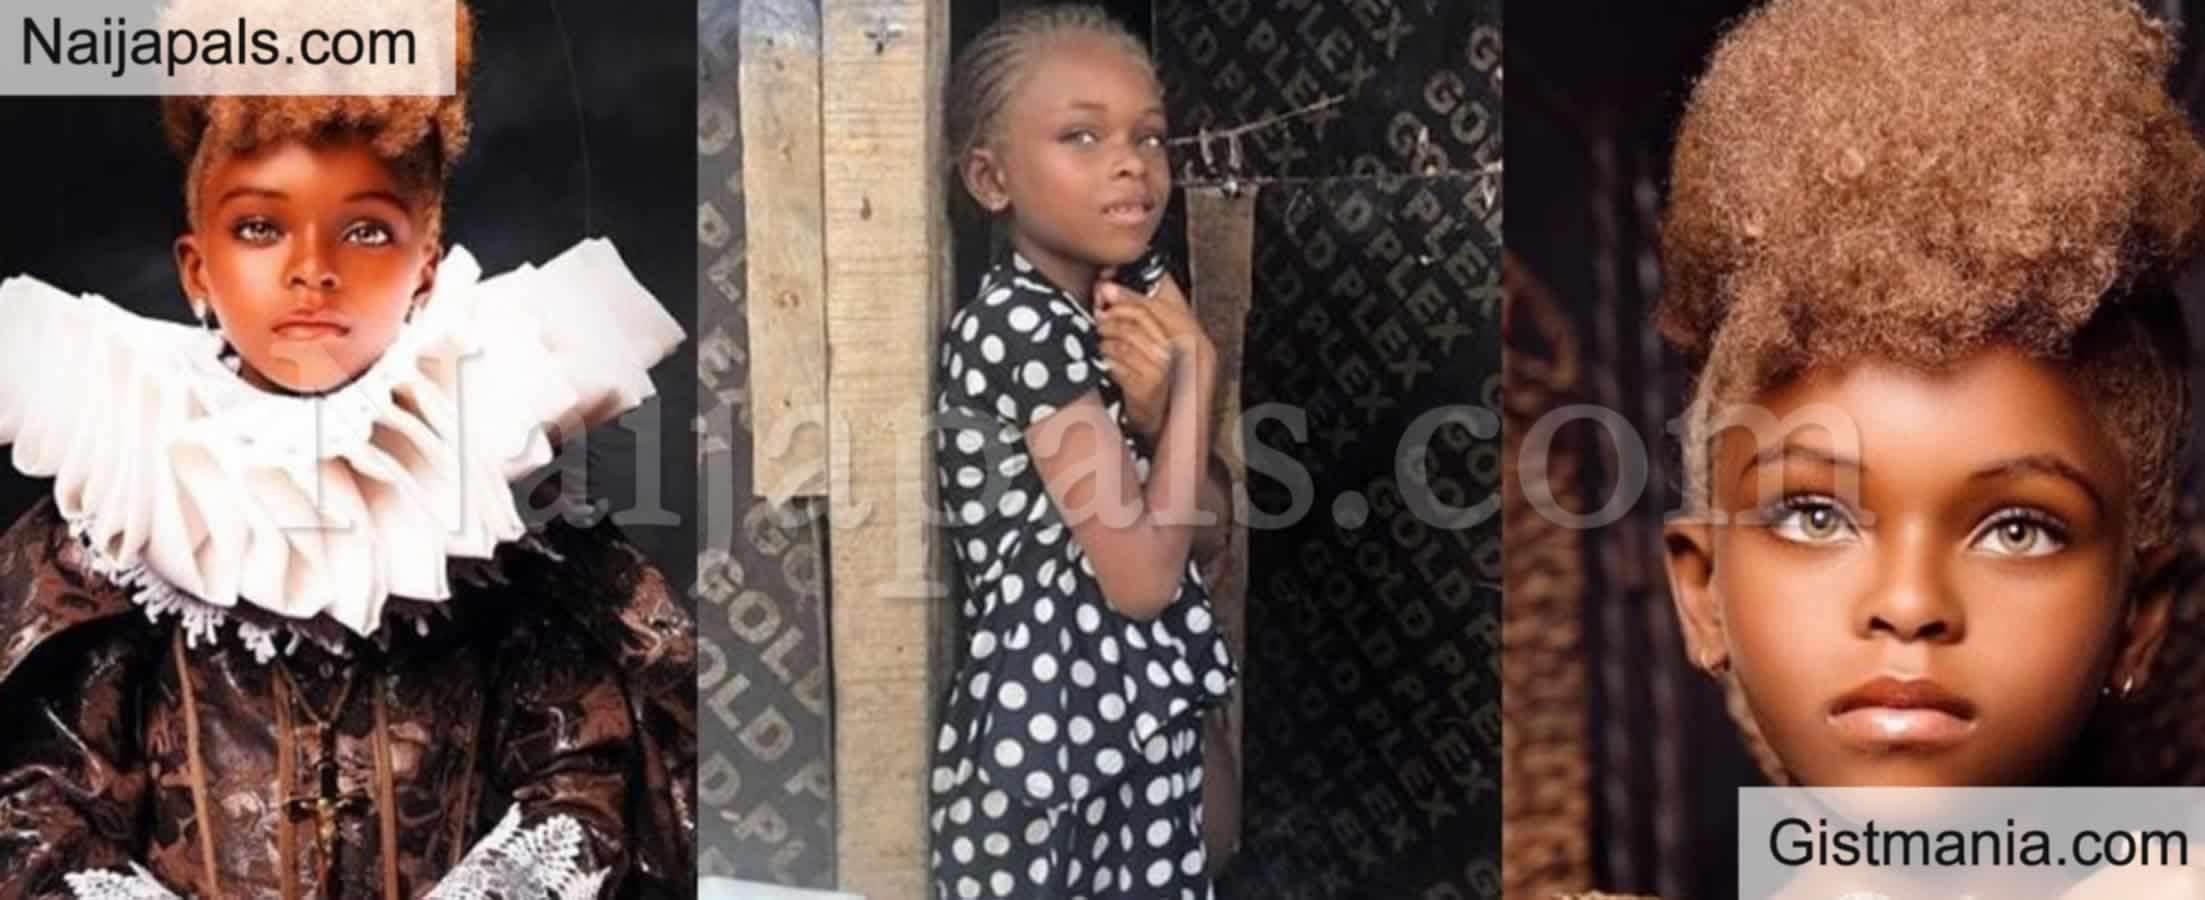 <img alt='.' class='lazyload' data-src='https://img.gistmania.com/emot/thumbs_up.gif' /> Wow! <b>Homeless Girl With Brown Hair And Eyes Transformed Into a Sensational Model</b> (Photos)